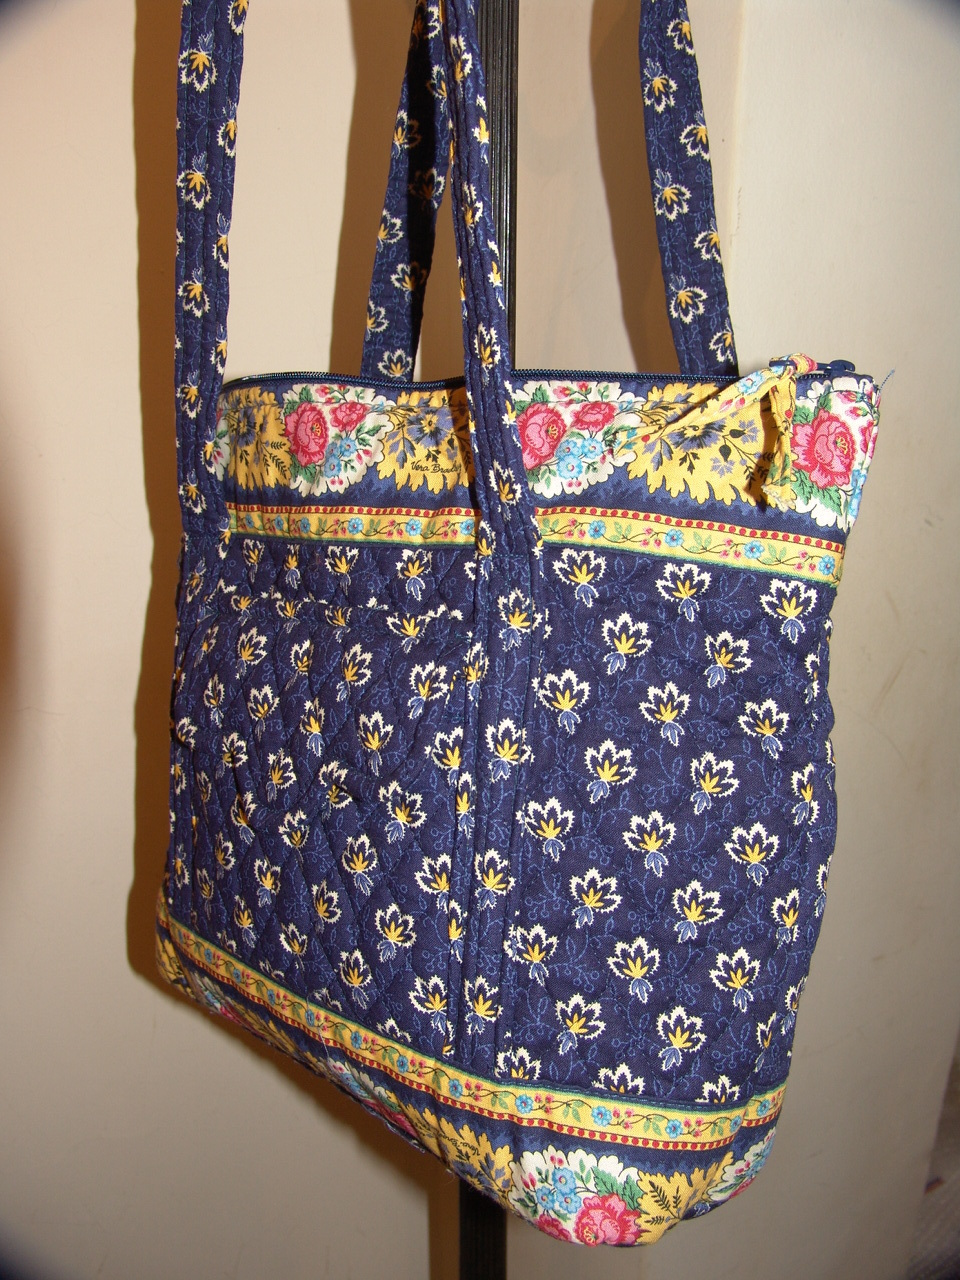 "NWOT VERA BRADLEY VILLAGER MAISON BLUE TOTE-12"" Tall-15"" Wide"